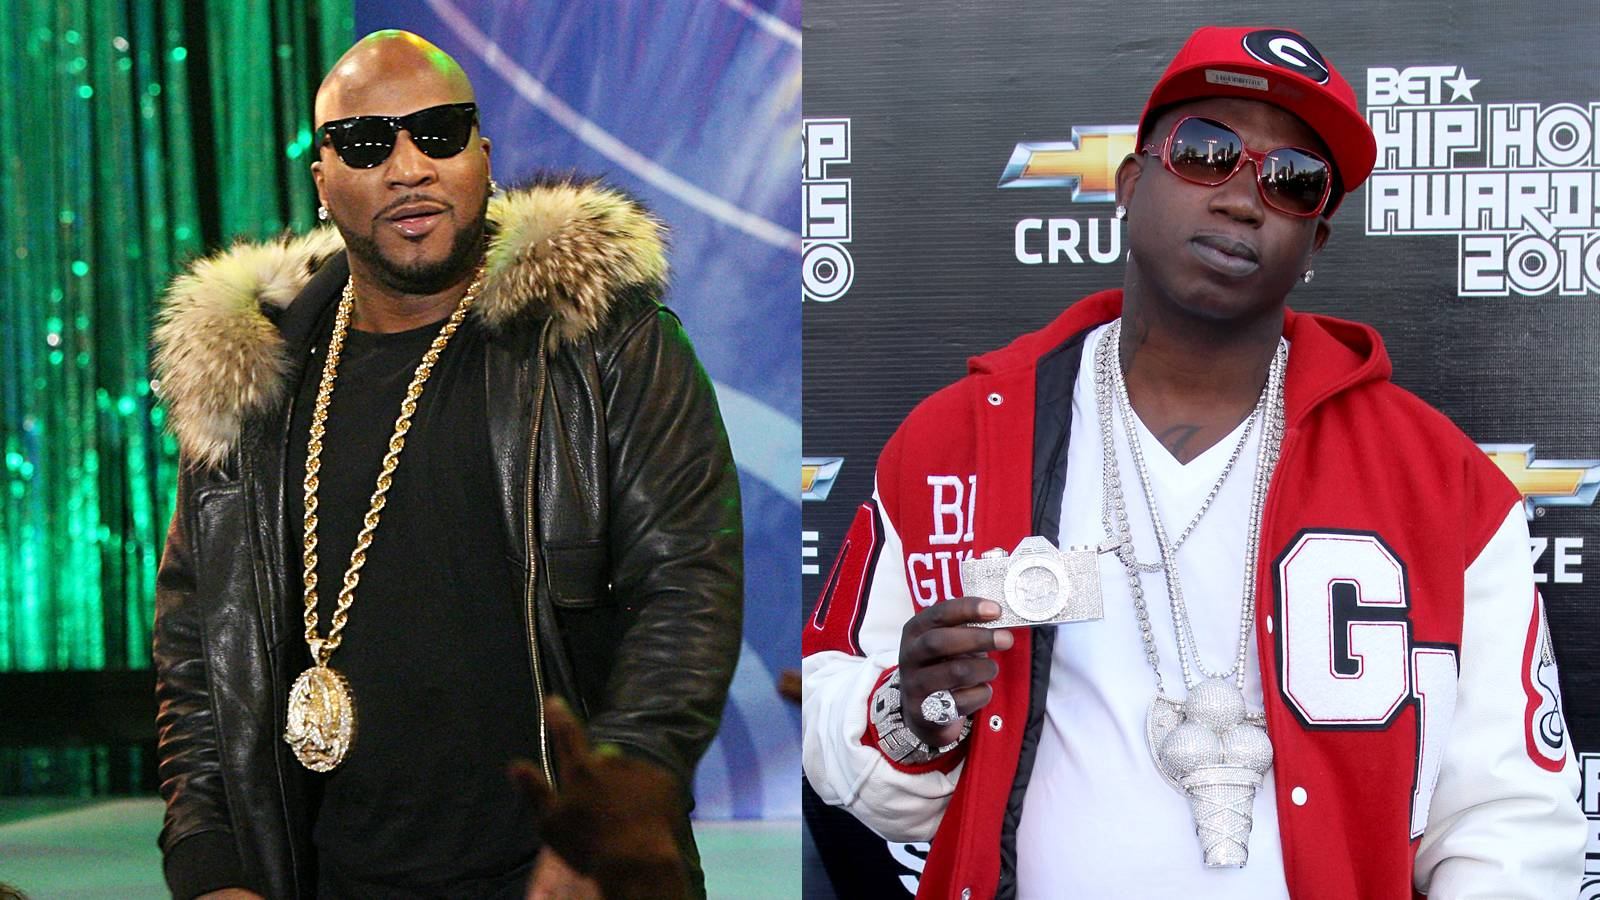 """Young Jeezy vs. Gucci Mane (Round 1) - Jeezy and Gucci have been clashing for years. Jeezy was featured on Gucci's breakthrough hit """"Icy,"""" but later claimed he was never paid for his work on the song and a war of words on wax and in the press escalated to real-life violence. Five men who were allegedly part of Jeezy's camp stormed a house Gucci was visiting and one was later found dead. Gucci and Jeezy eventually squashed, unsquashed and resquashed the beef with help from DJ Drama and seemed to have settled into a wary truce until the latest uproar. (Photos: Bennett Raglin/Getty Images; Taylor Hill/Getty Images)"""